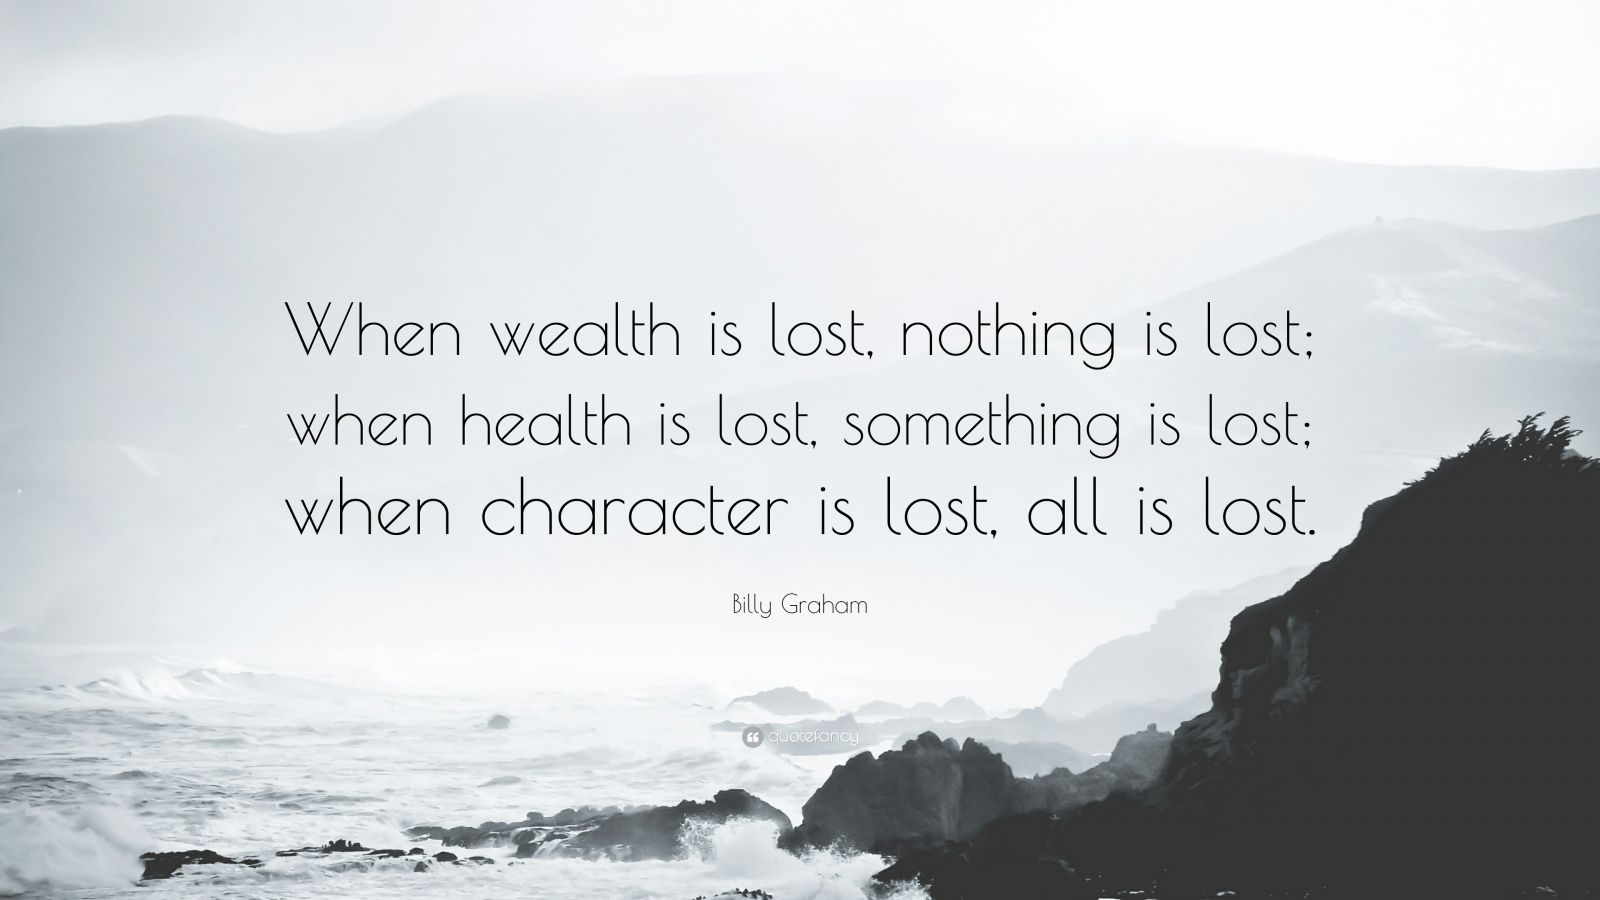 """Billy Graham Quote: """"When wealth is lost, nothing is lost; when health is lost, something is lost; when character is lost, all is lost."""""""